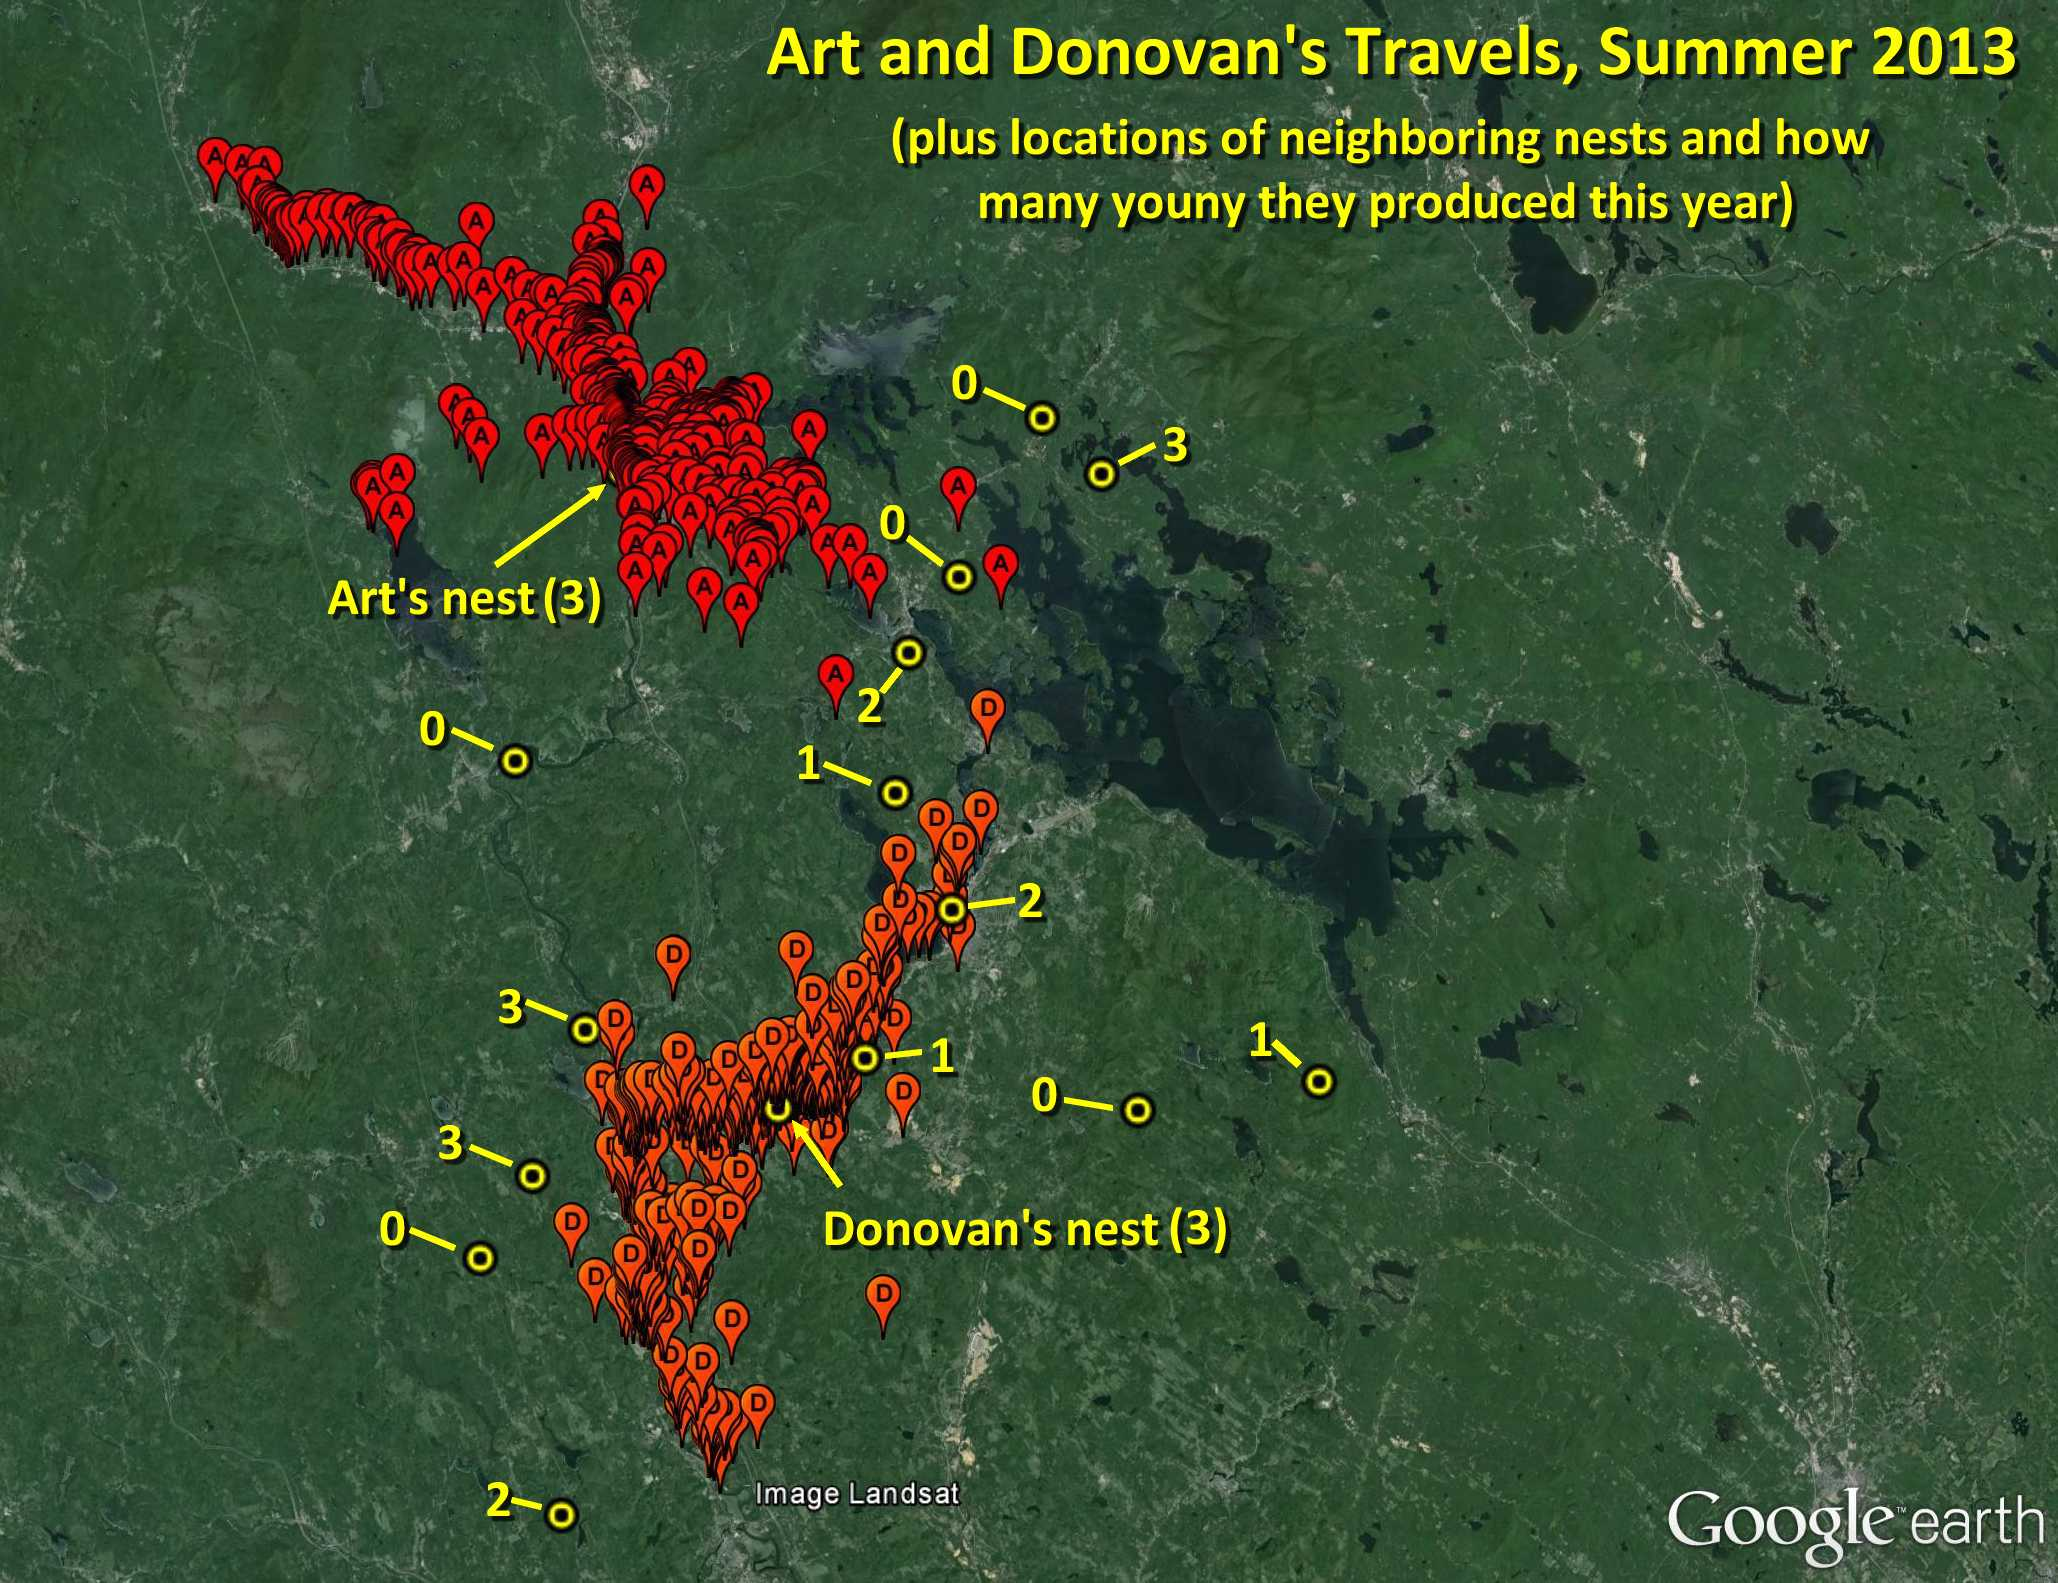 Art and Donovan's territories summer 2013